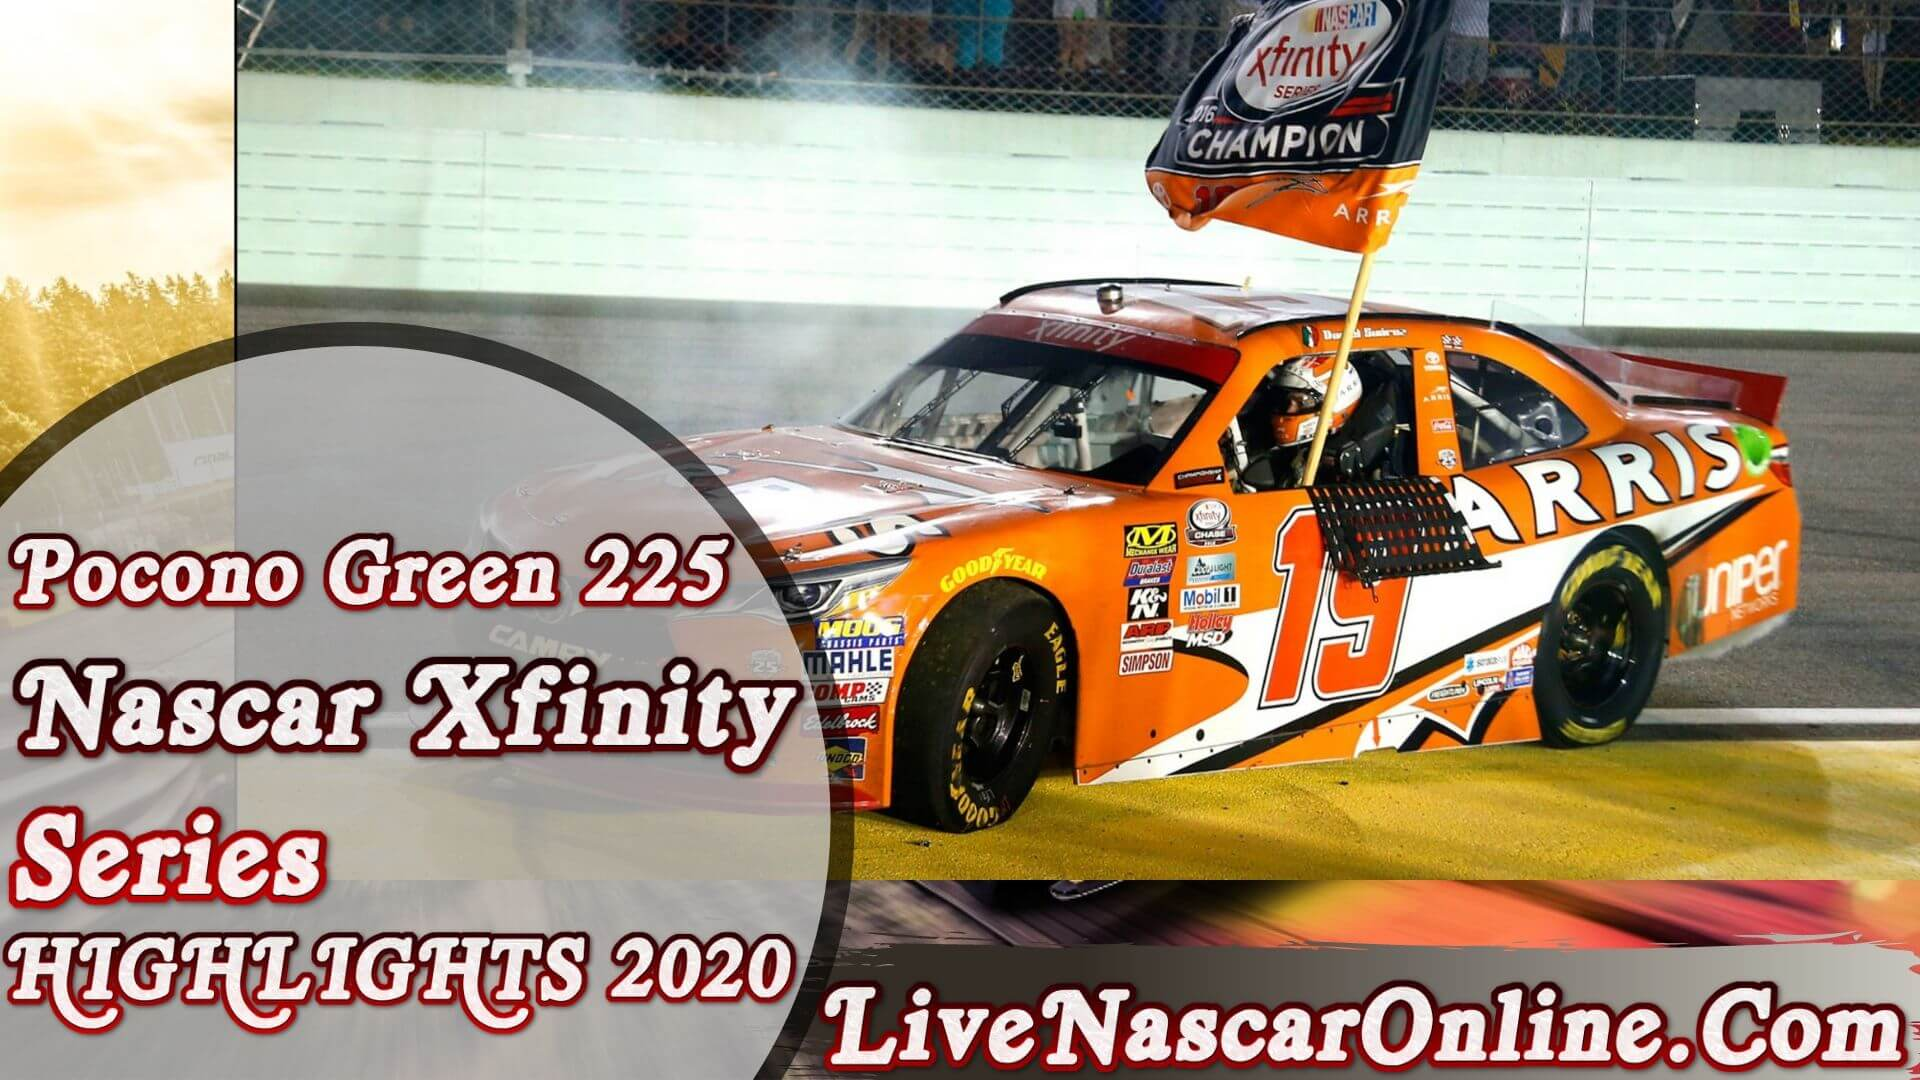 Pocono Green 225 Nascar Xfinity Series Highlights 2020